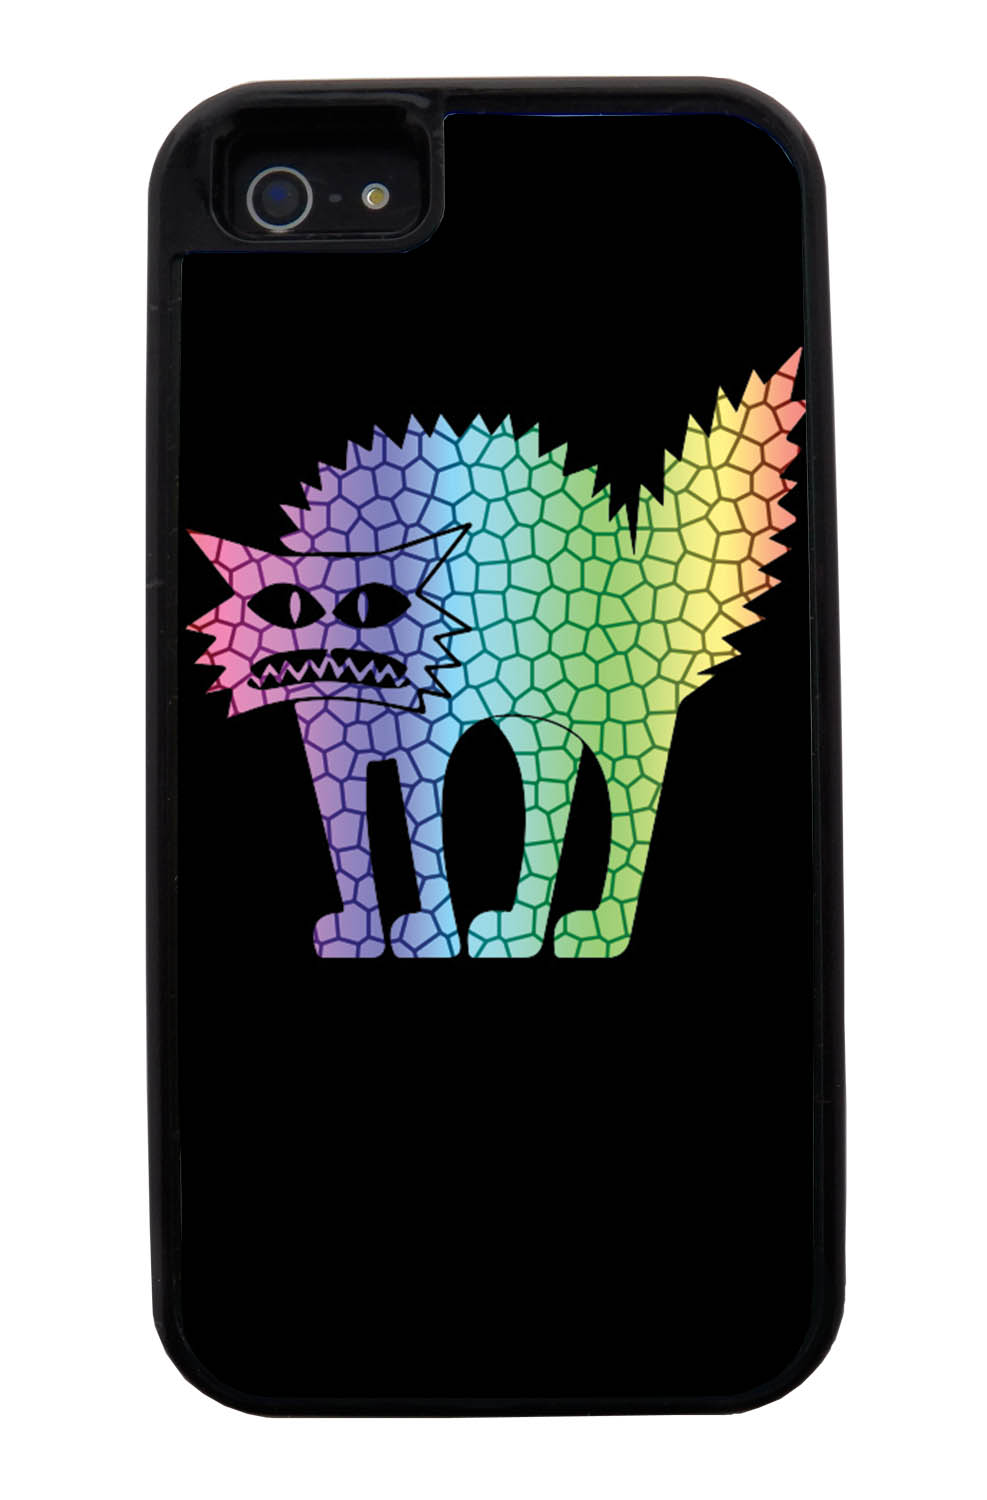 Apple iPhone 5 / 5S Cat Case - Rainbow Colored Frenzied Cat on Black - Simple Stencils Cutout - Black Tough Hybrid Case